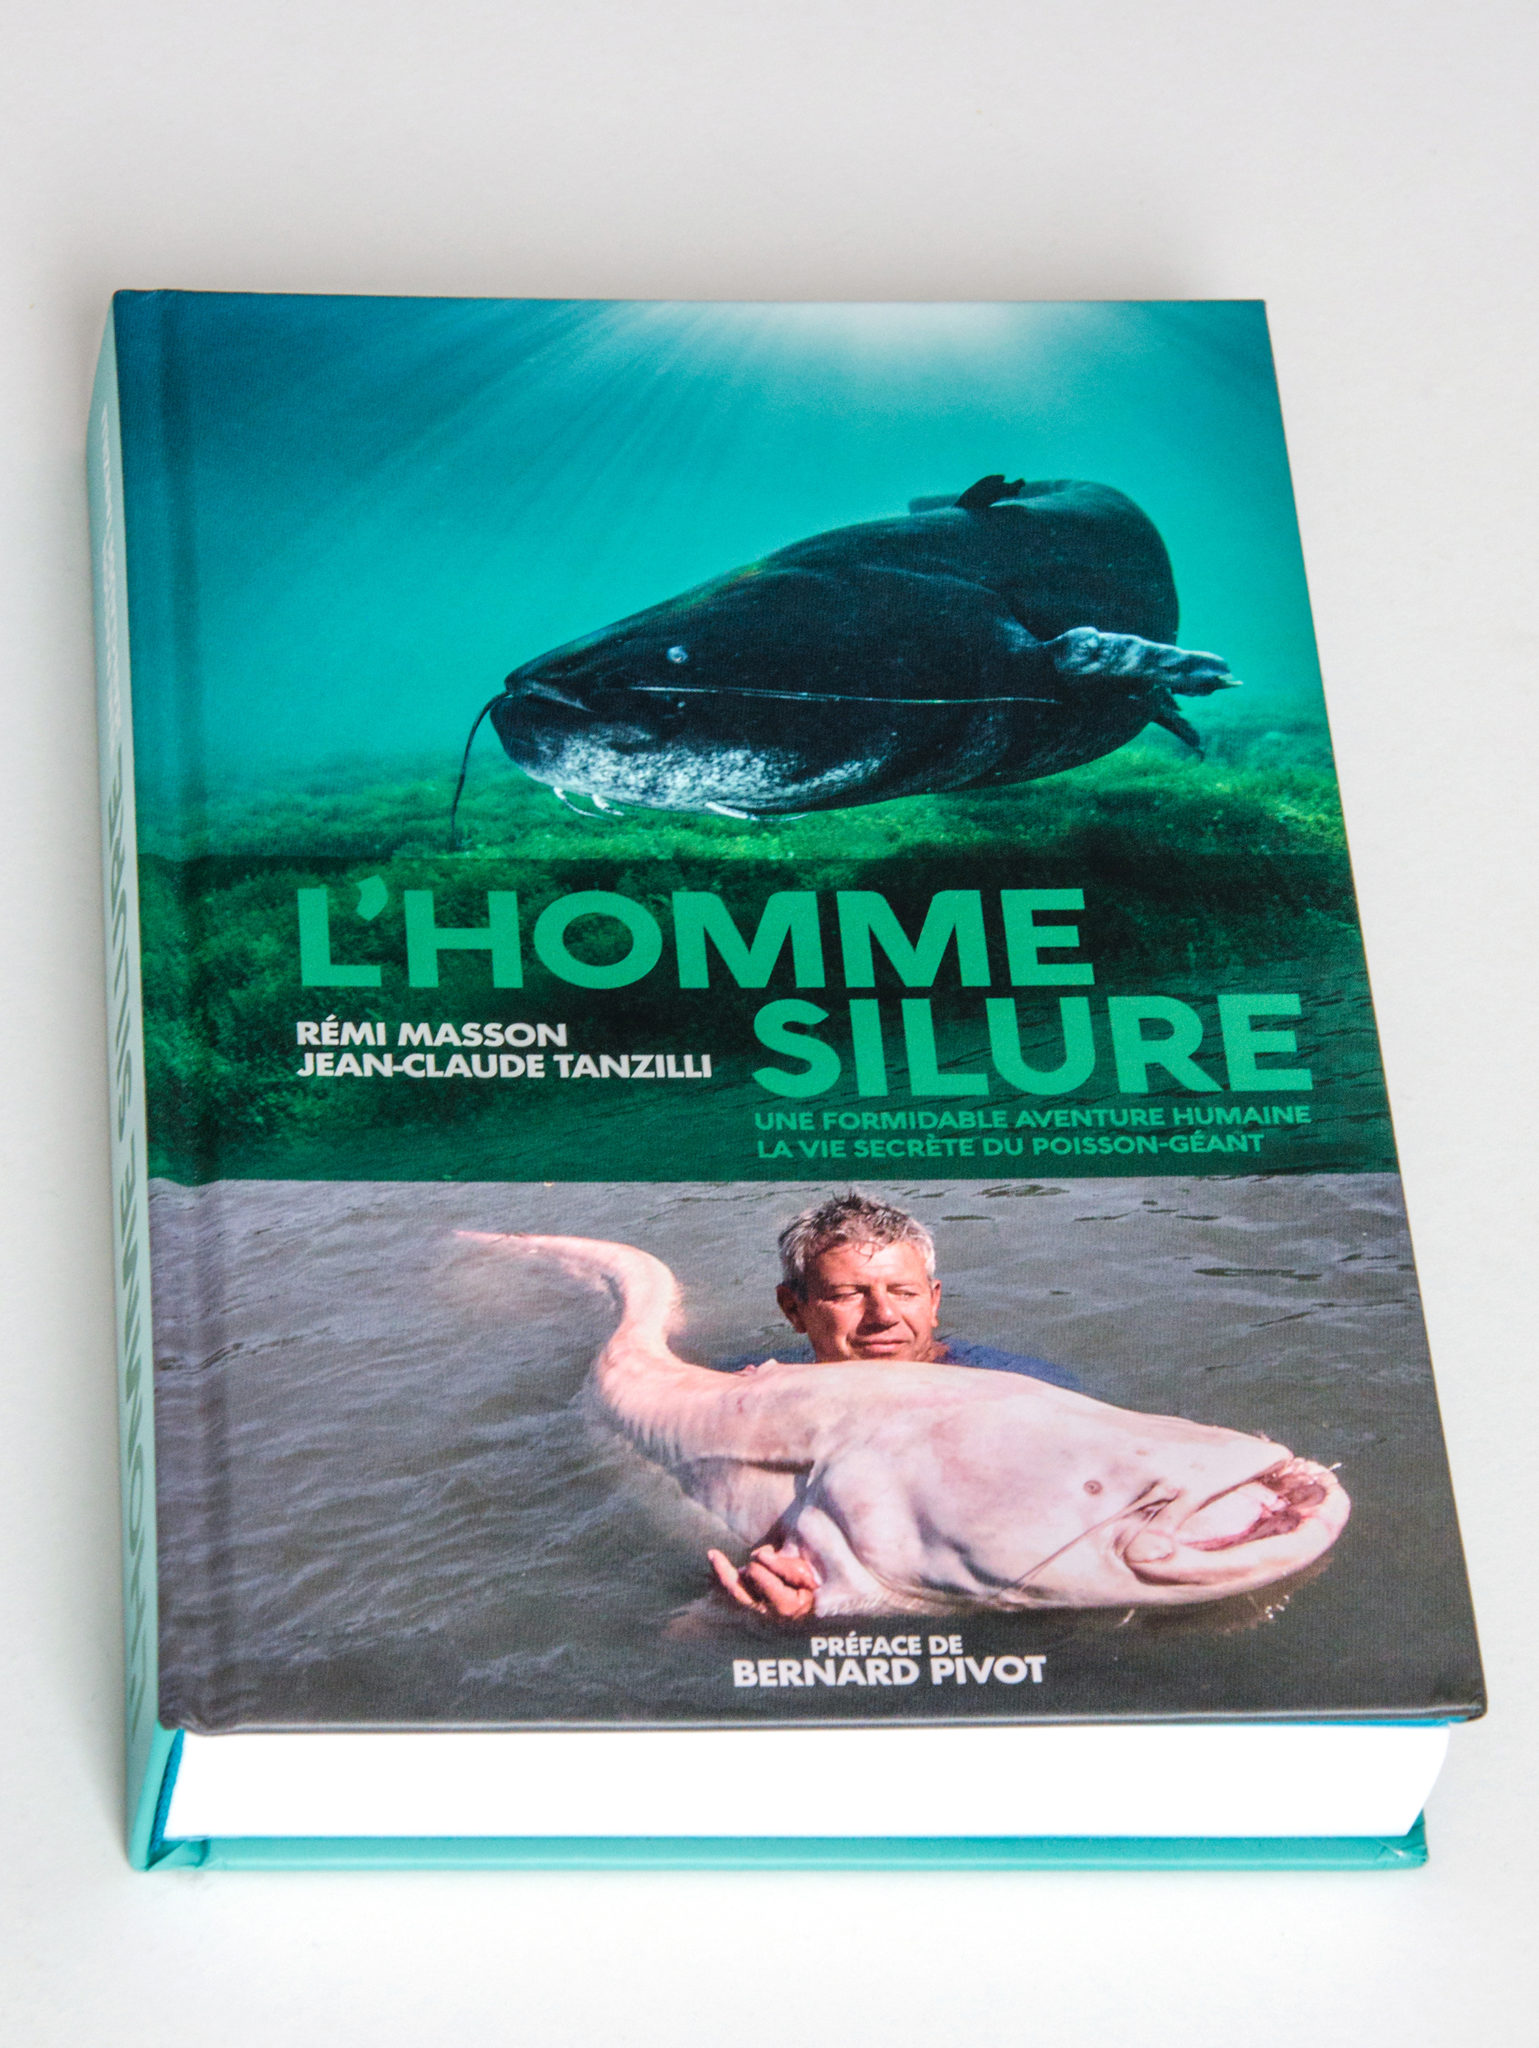 L'homme silure